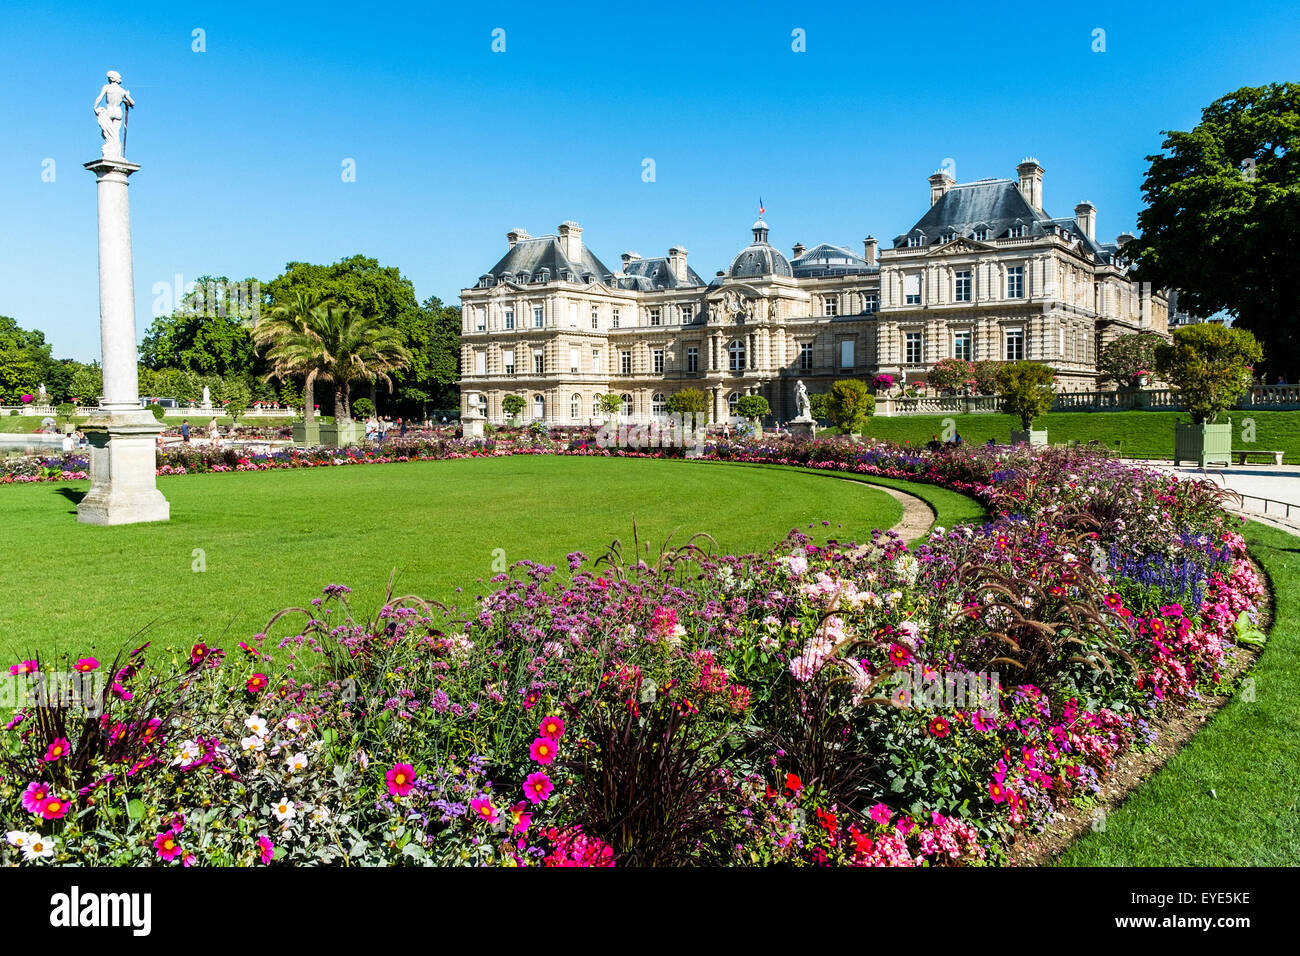 Le jardin du luxembourg gardens paris france stock photo for Le jardin de france